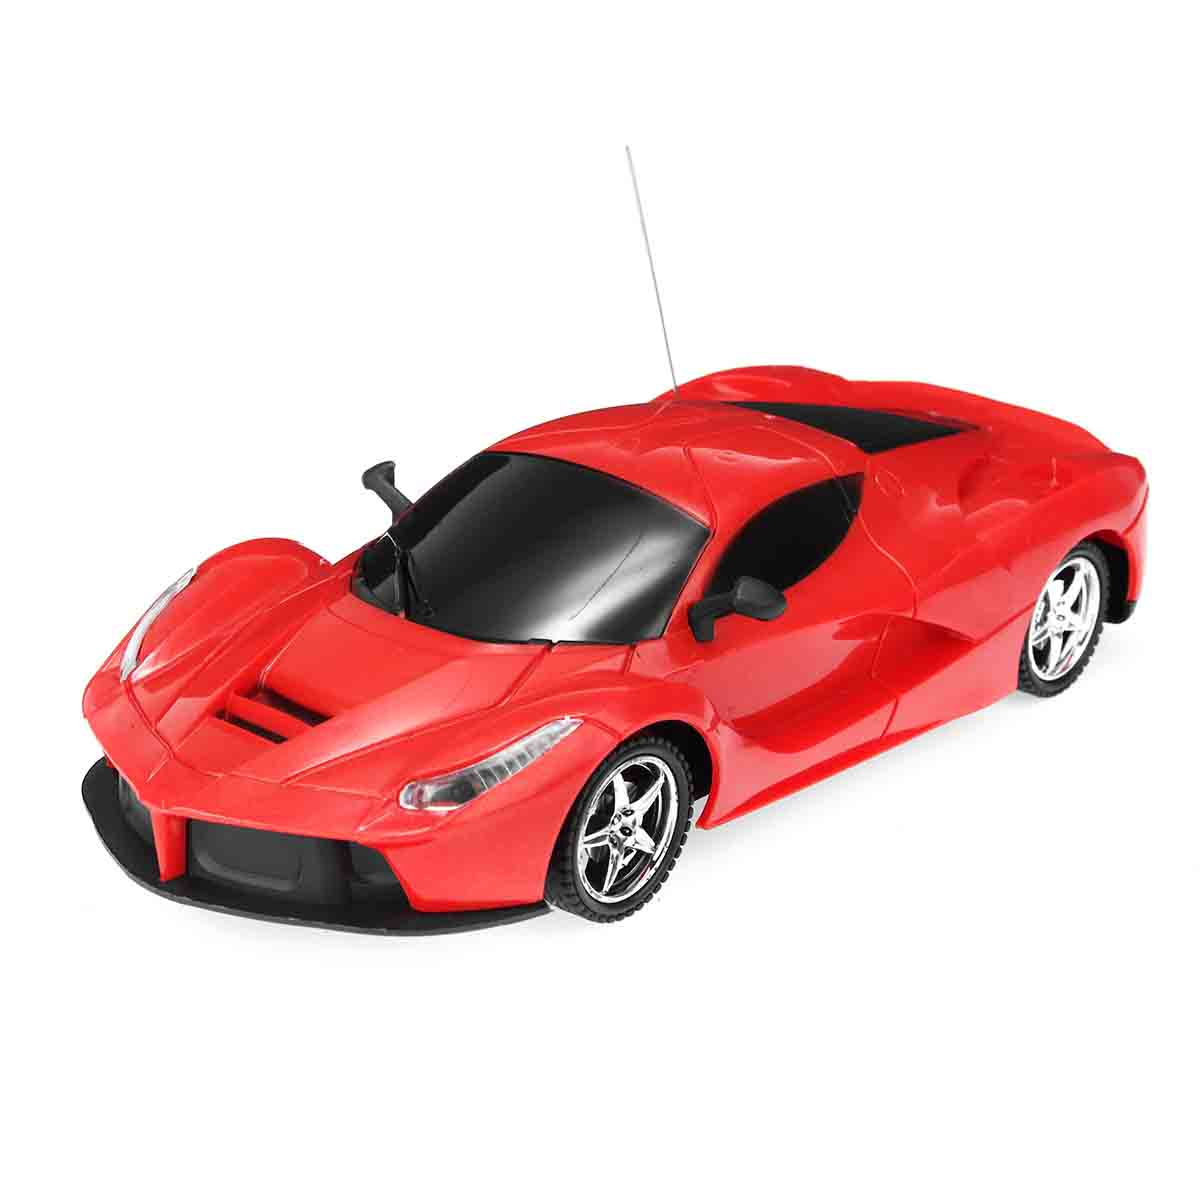 1/24 Scale Lamborghini Radio Remote Control Model Car Toy with Headlights for Kids Adults (Red) Hobby Gift